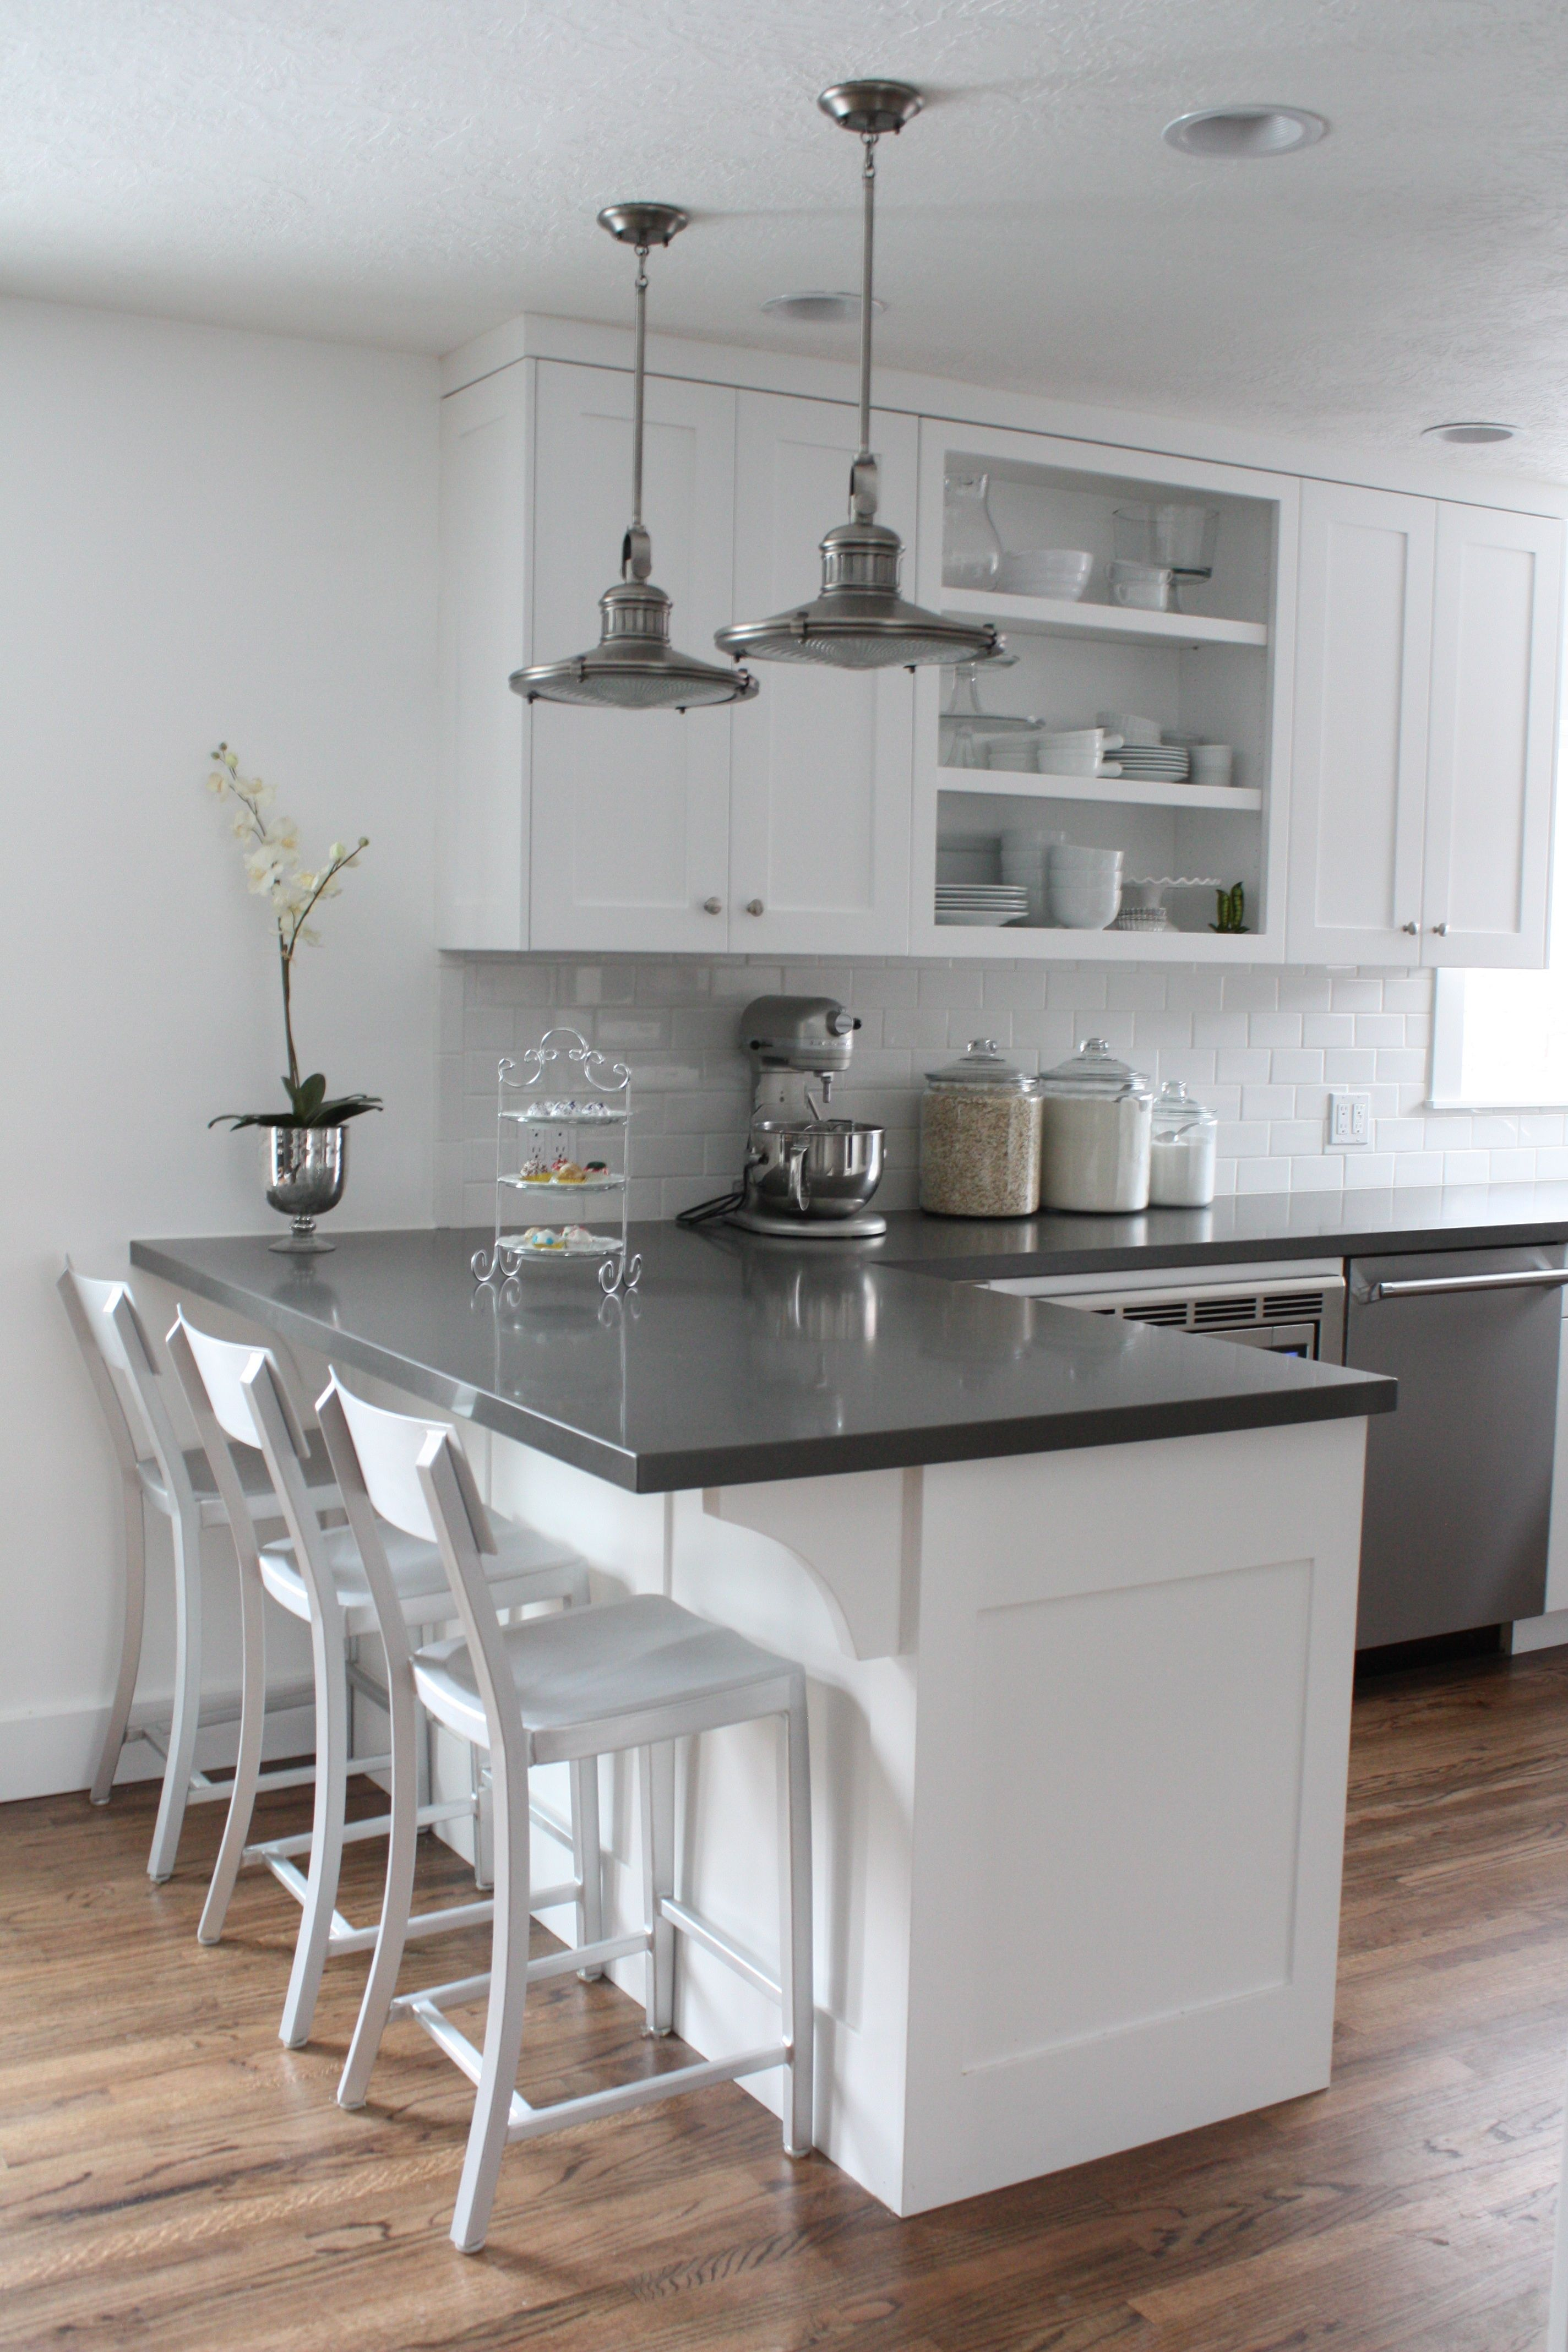 This is it!!! White cabinets, subway tile, quartz countertops ...